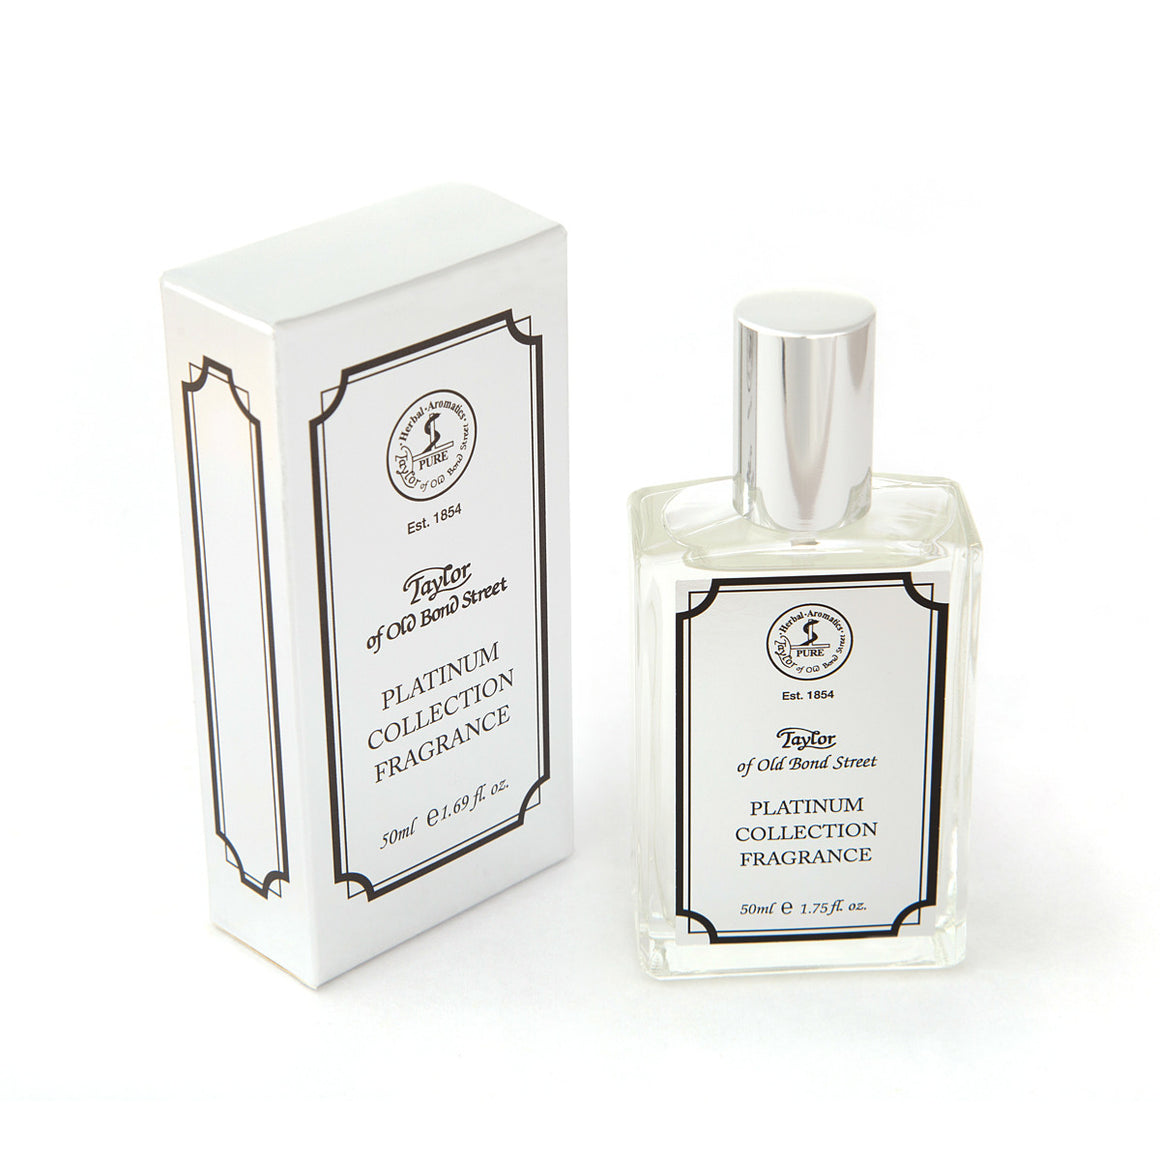 Taylor of Old Bond Street Platinum Collection Fragrance 50ml